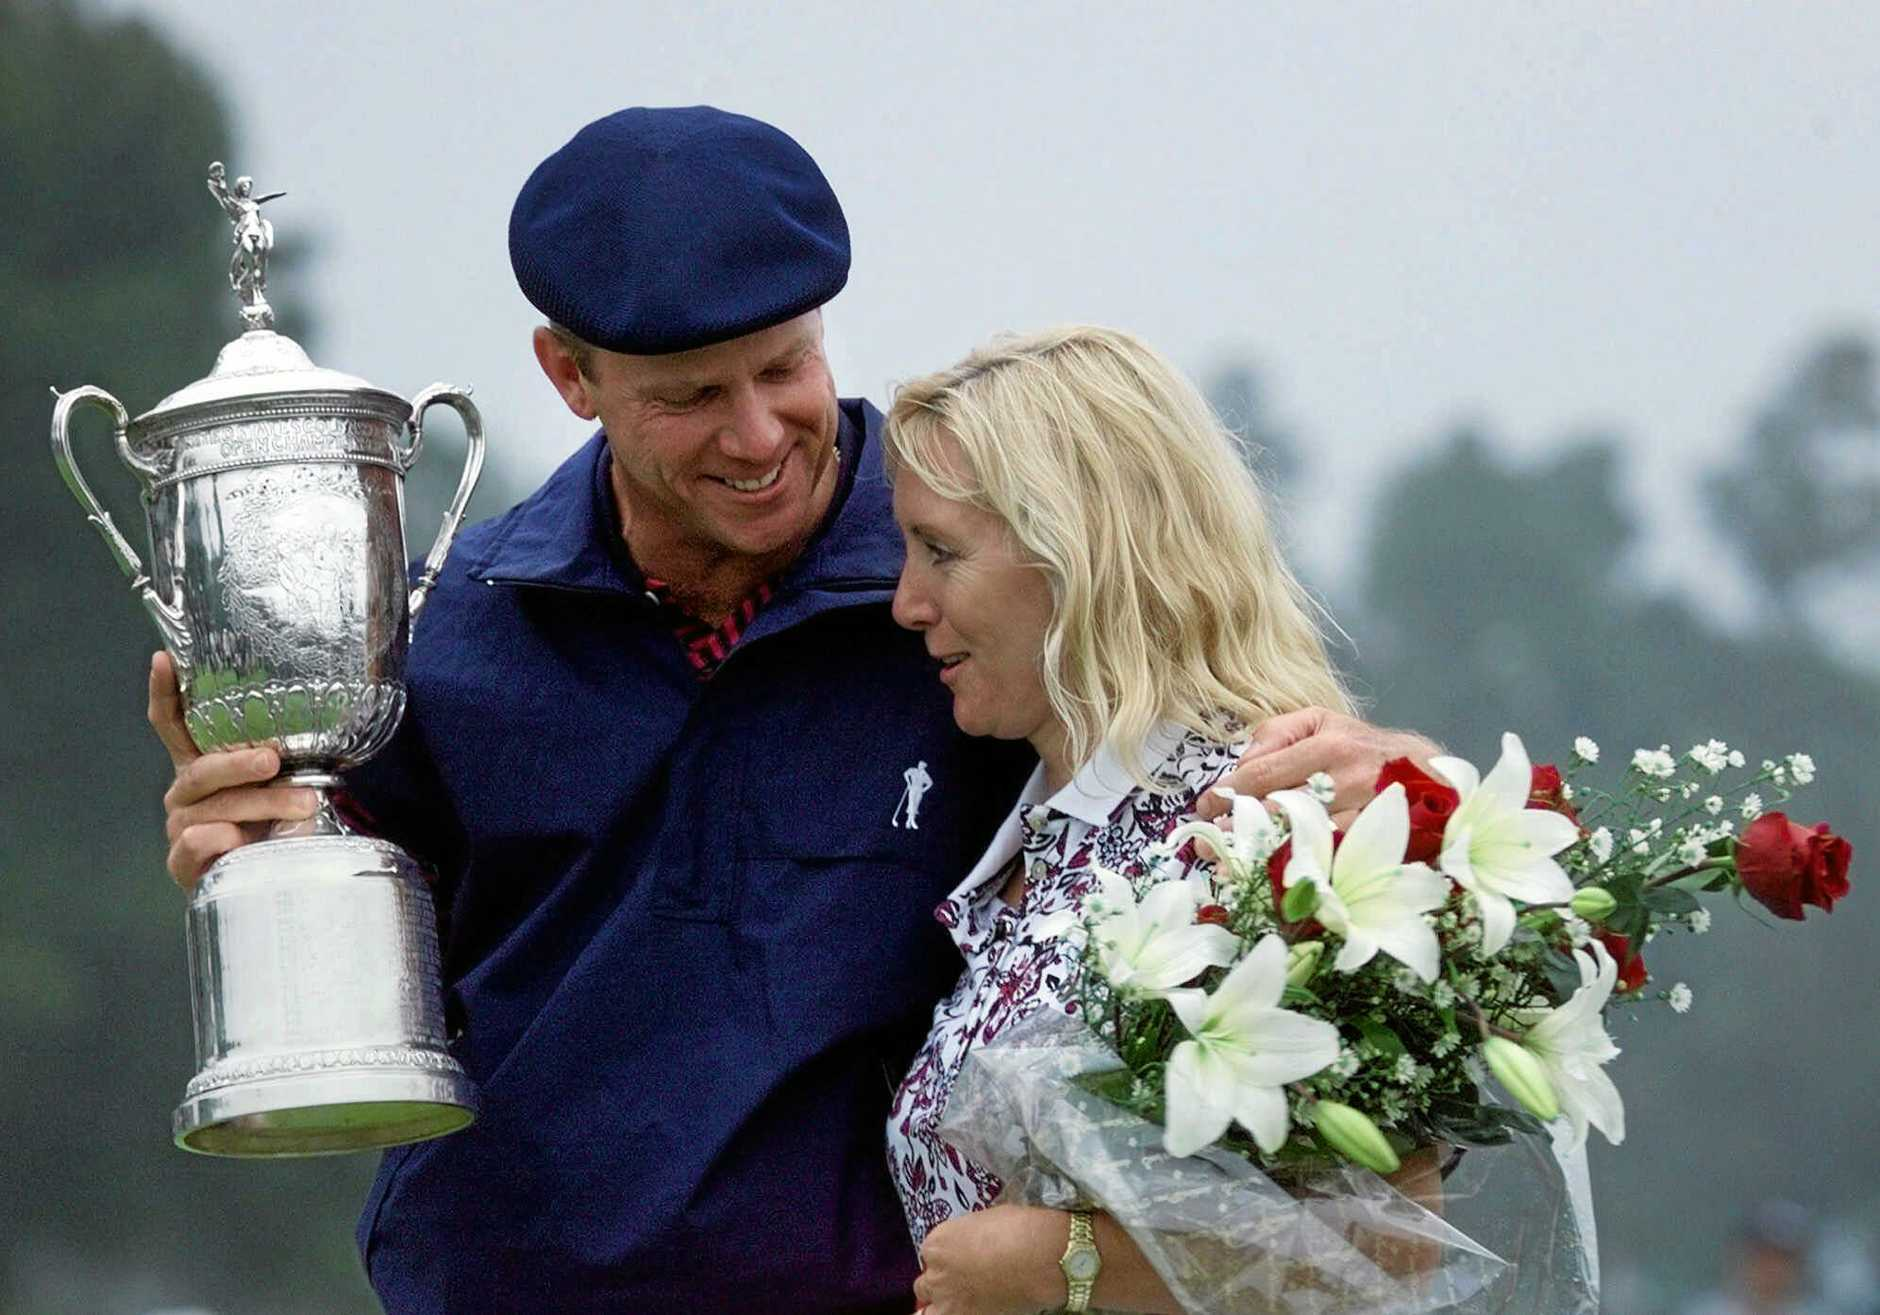 Payne Stewart holds onto his wife, Tracey Ferguson, and the winner's trophy after winning the U.S. Open golf championship at the Pinehurst Resort & Country Club's No. 2 course in Pinehurst, N.C. on Sunday, June 20, 1999. (AP Photo/Doug Mills)